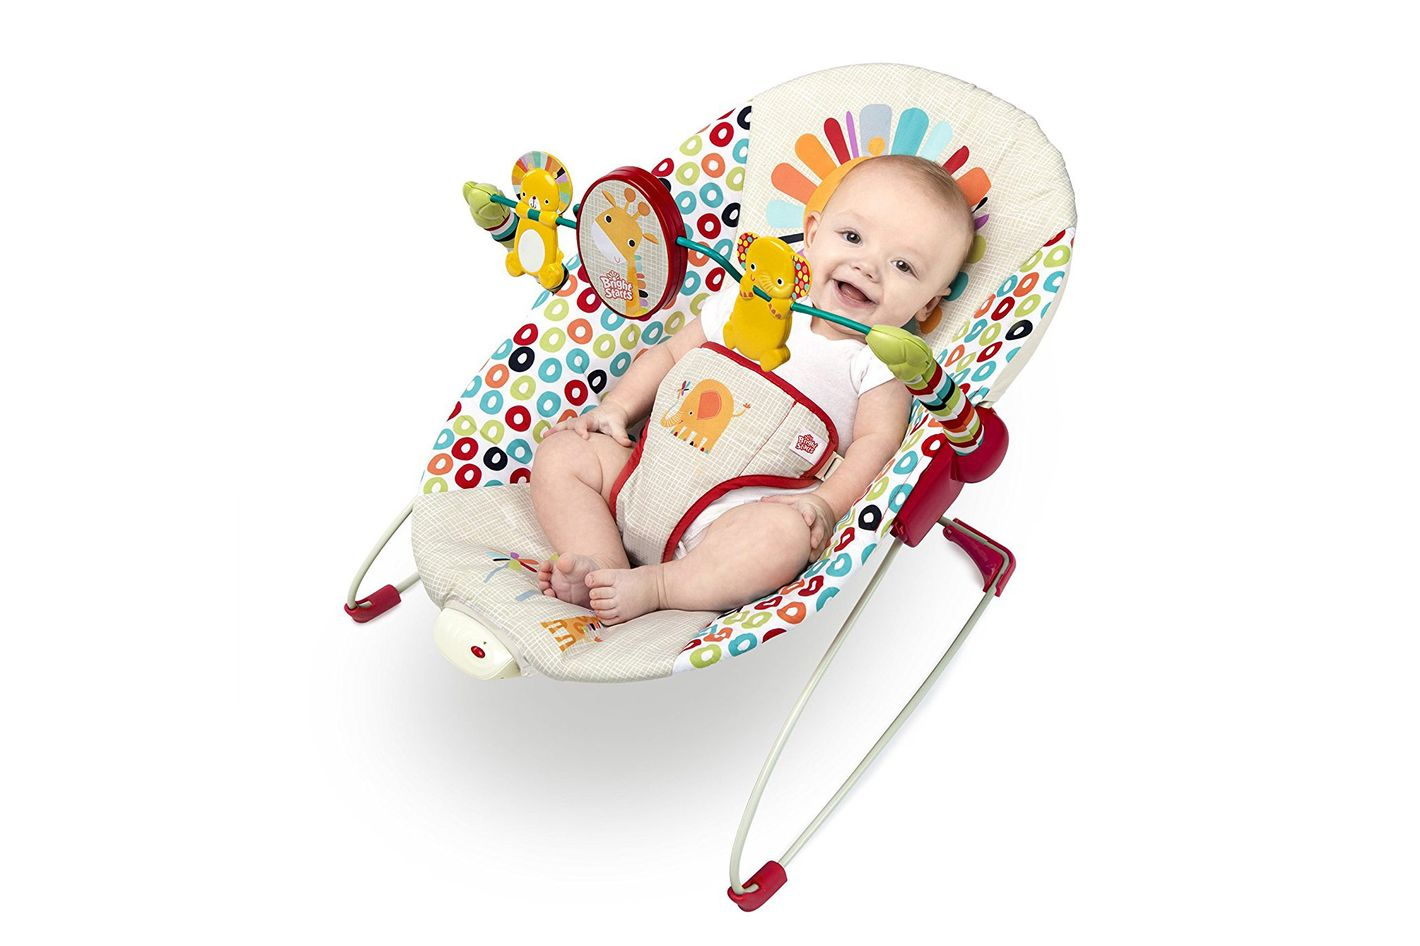 d9acee874 The Best Baby Bouncers and Jumpers Reviews 2017